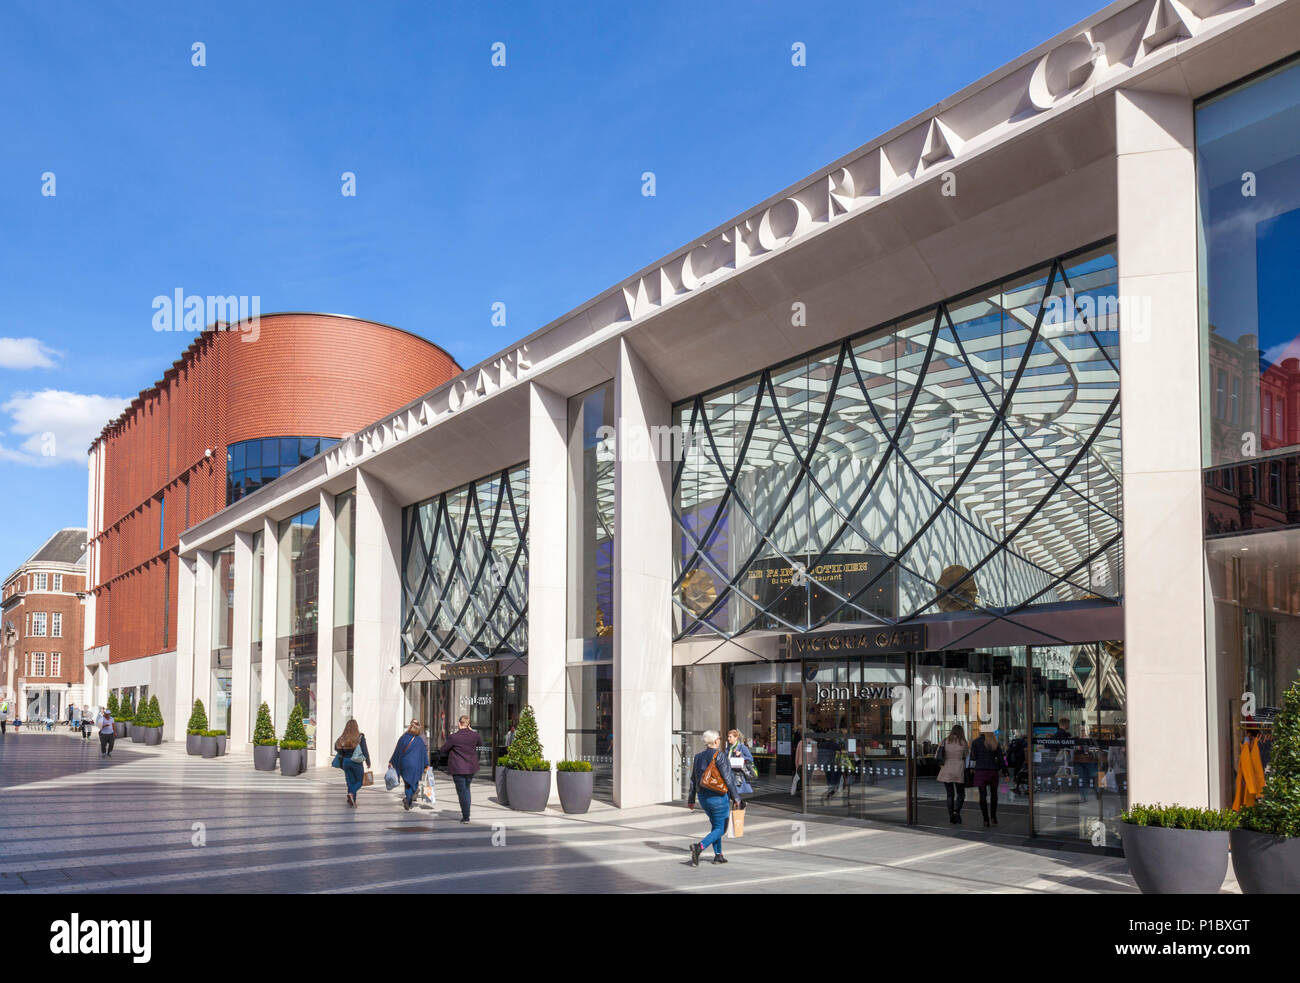 yorkshire england leeds yorkshire victoria leeds shopping centre victoria gate fashion designer shops high-end department store leeds uk england - Stock Image